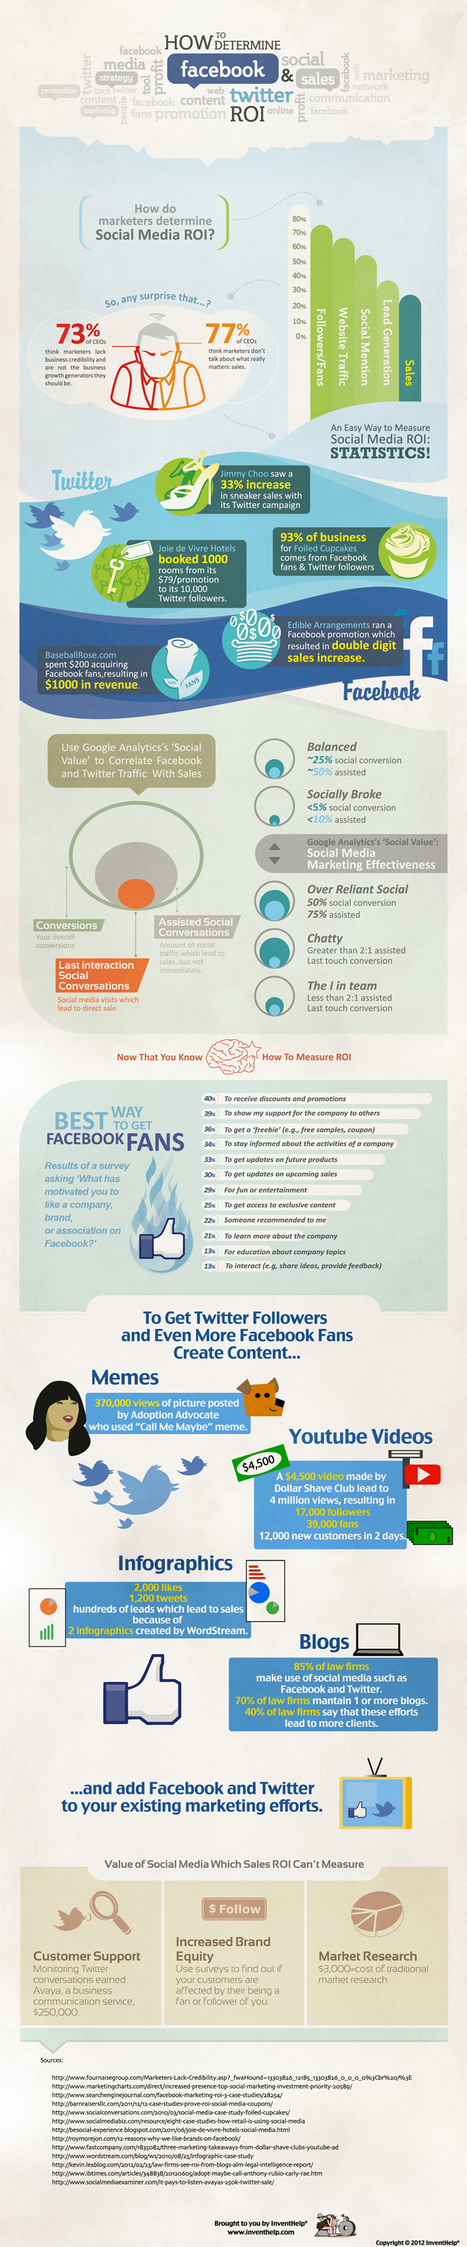 How To Determine Facebook And Twitter ROI + #Infographic | Social Intelligence | Scoop.it